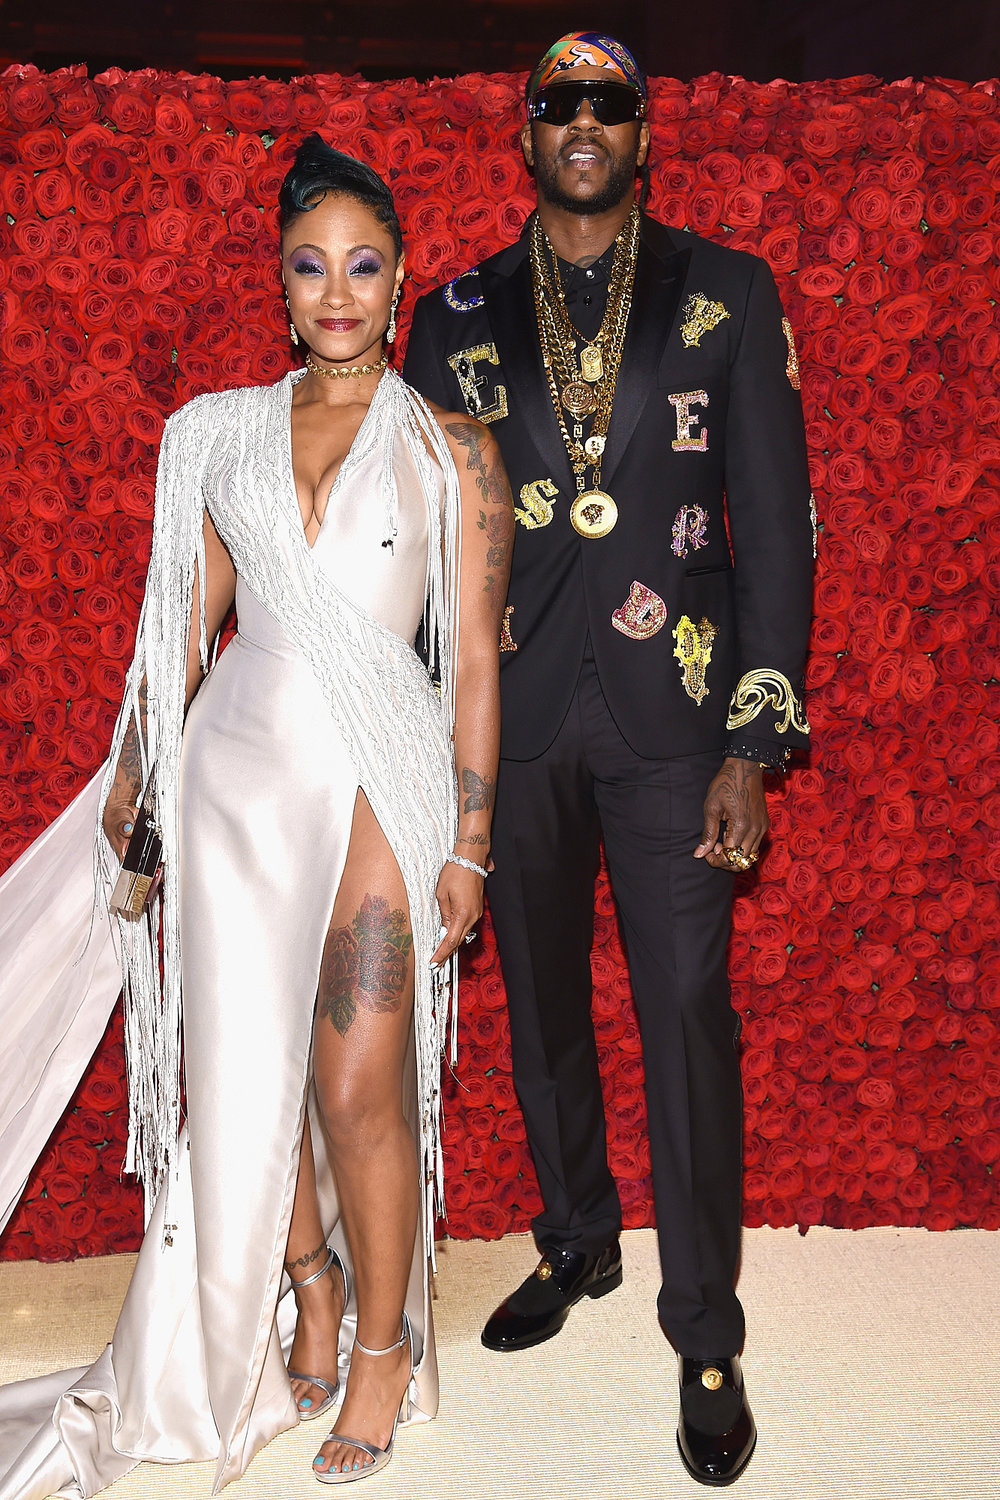 73. 2 CHAINZ & KESHA WARD